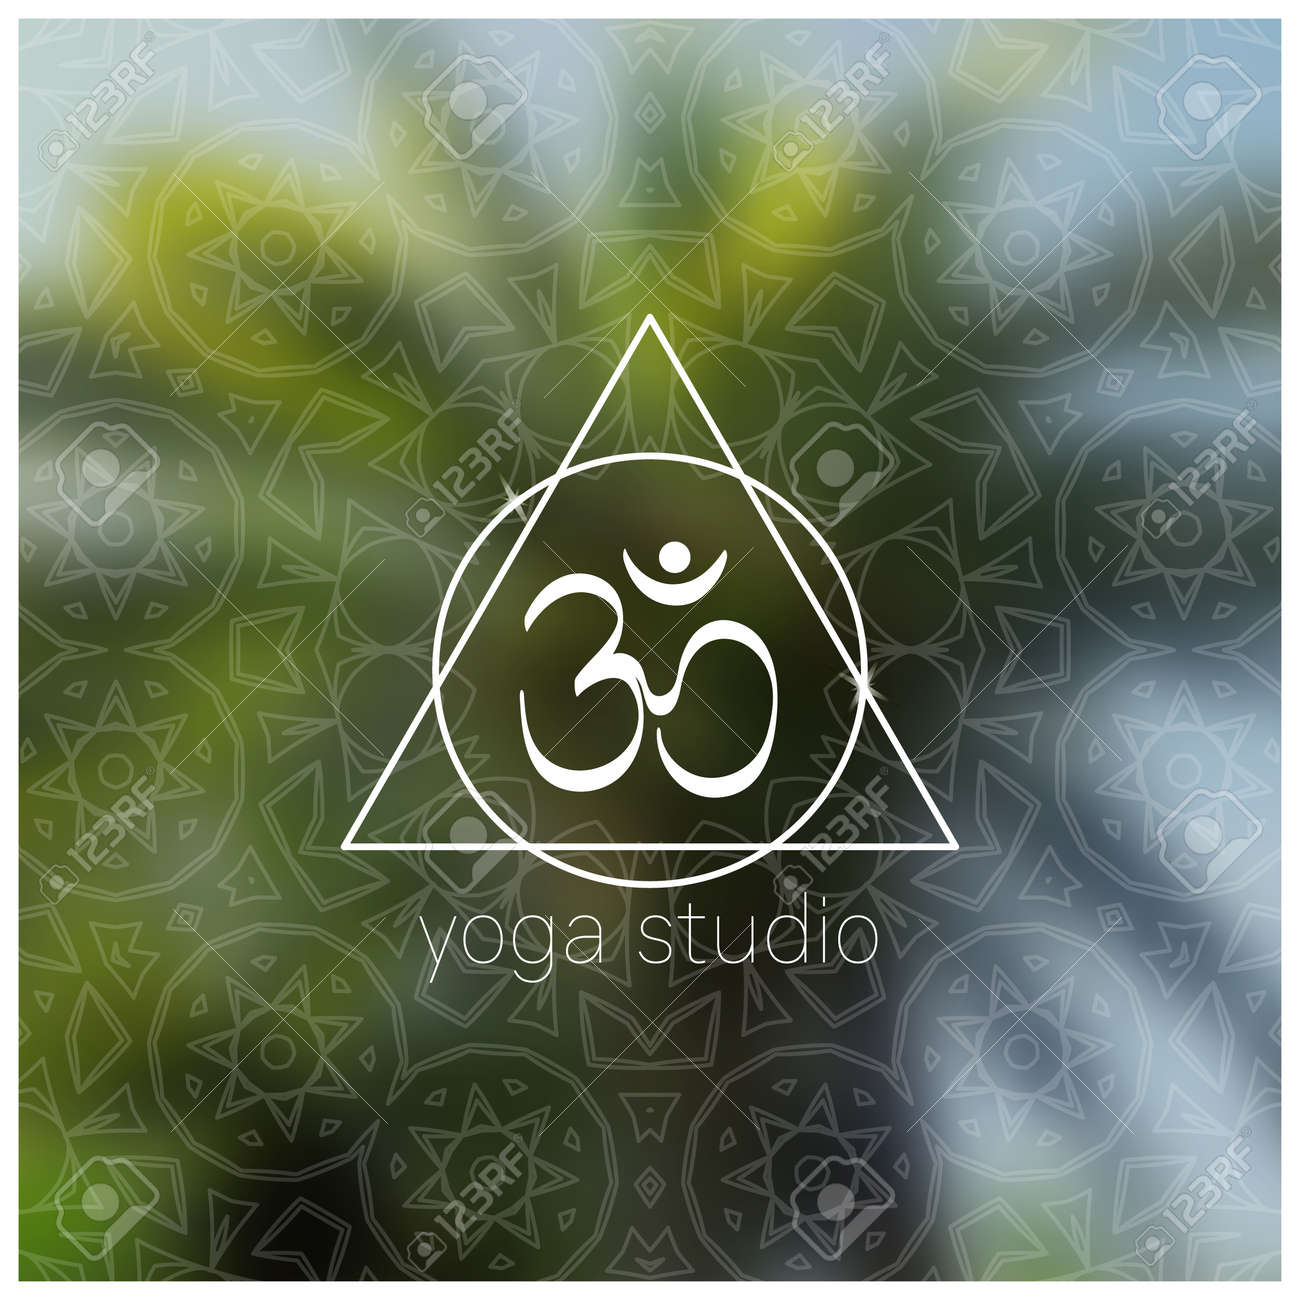 Tropical Yoga Banner With Om Symbol Sacred Geometry Mandala Royalty Free Cliparts Vectors And Stock Illustration Image 74112373